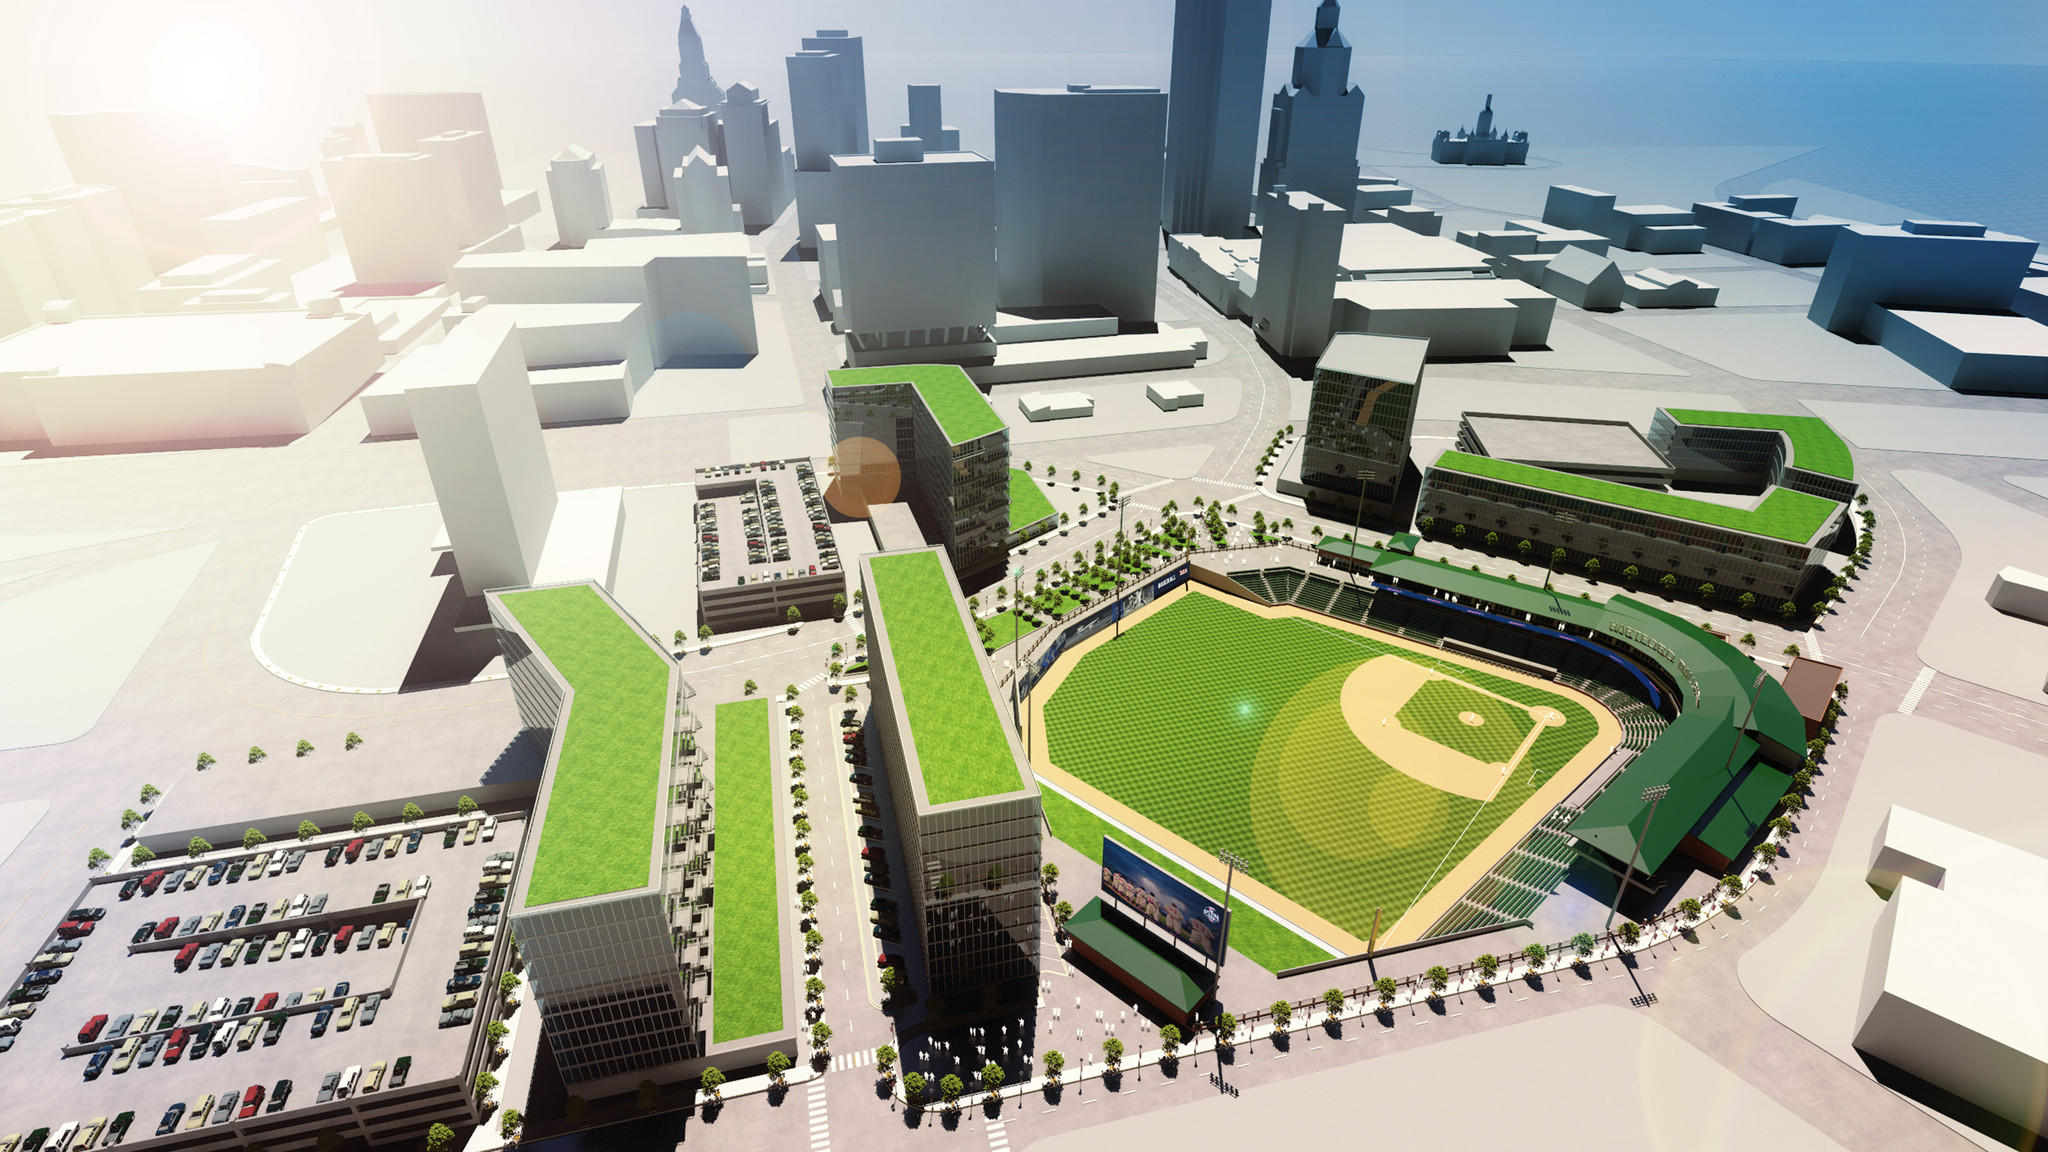 An overview of what a minor-league baseball stadium in Hartford may look like.